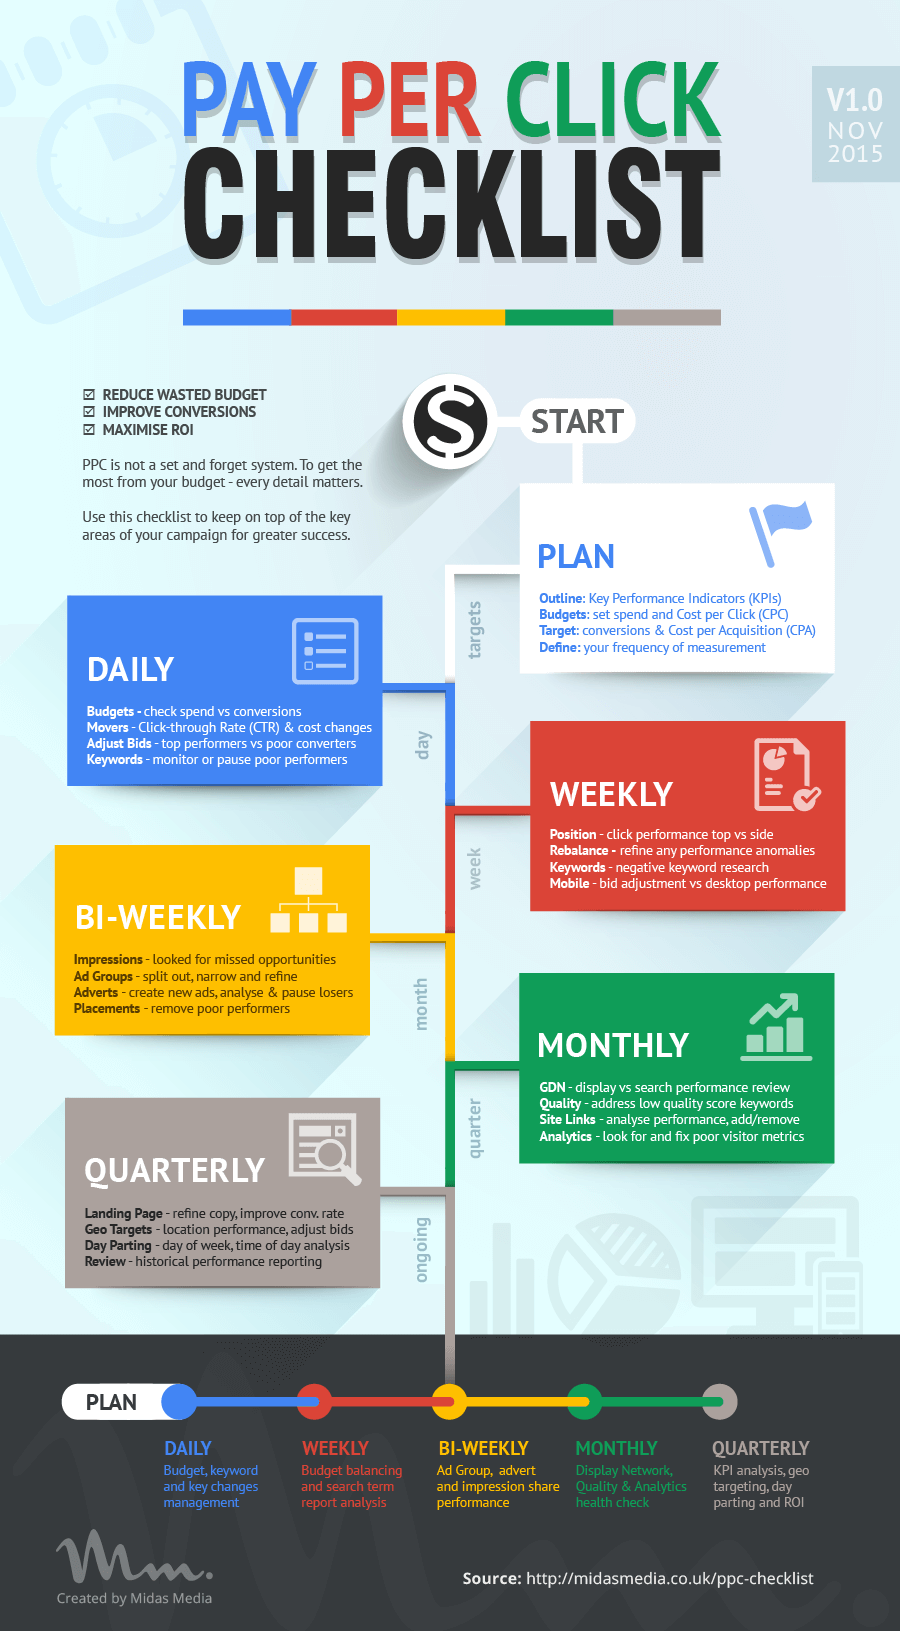 Pay Per Click Checklist infographic